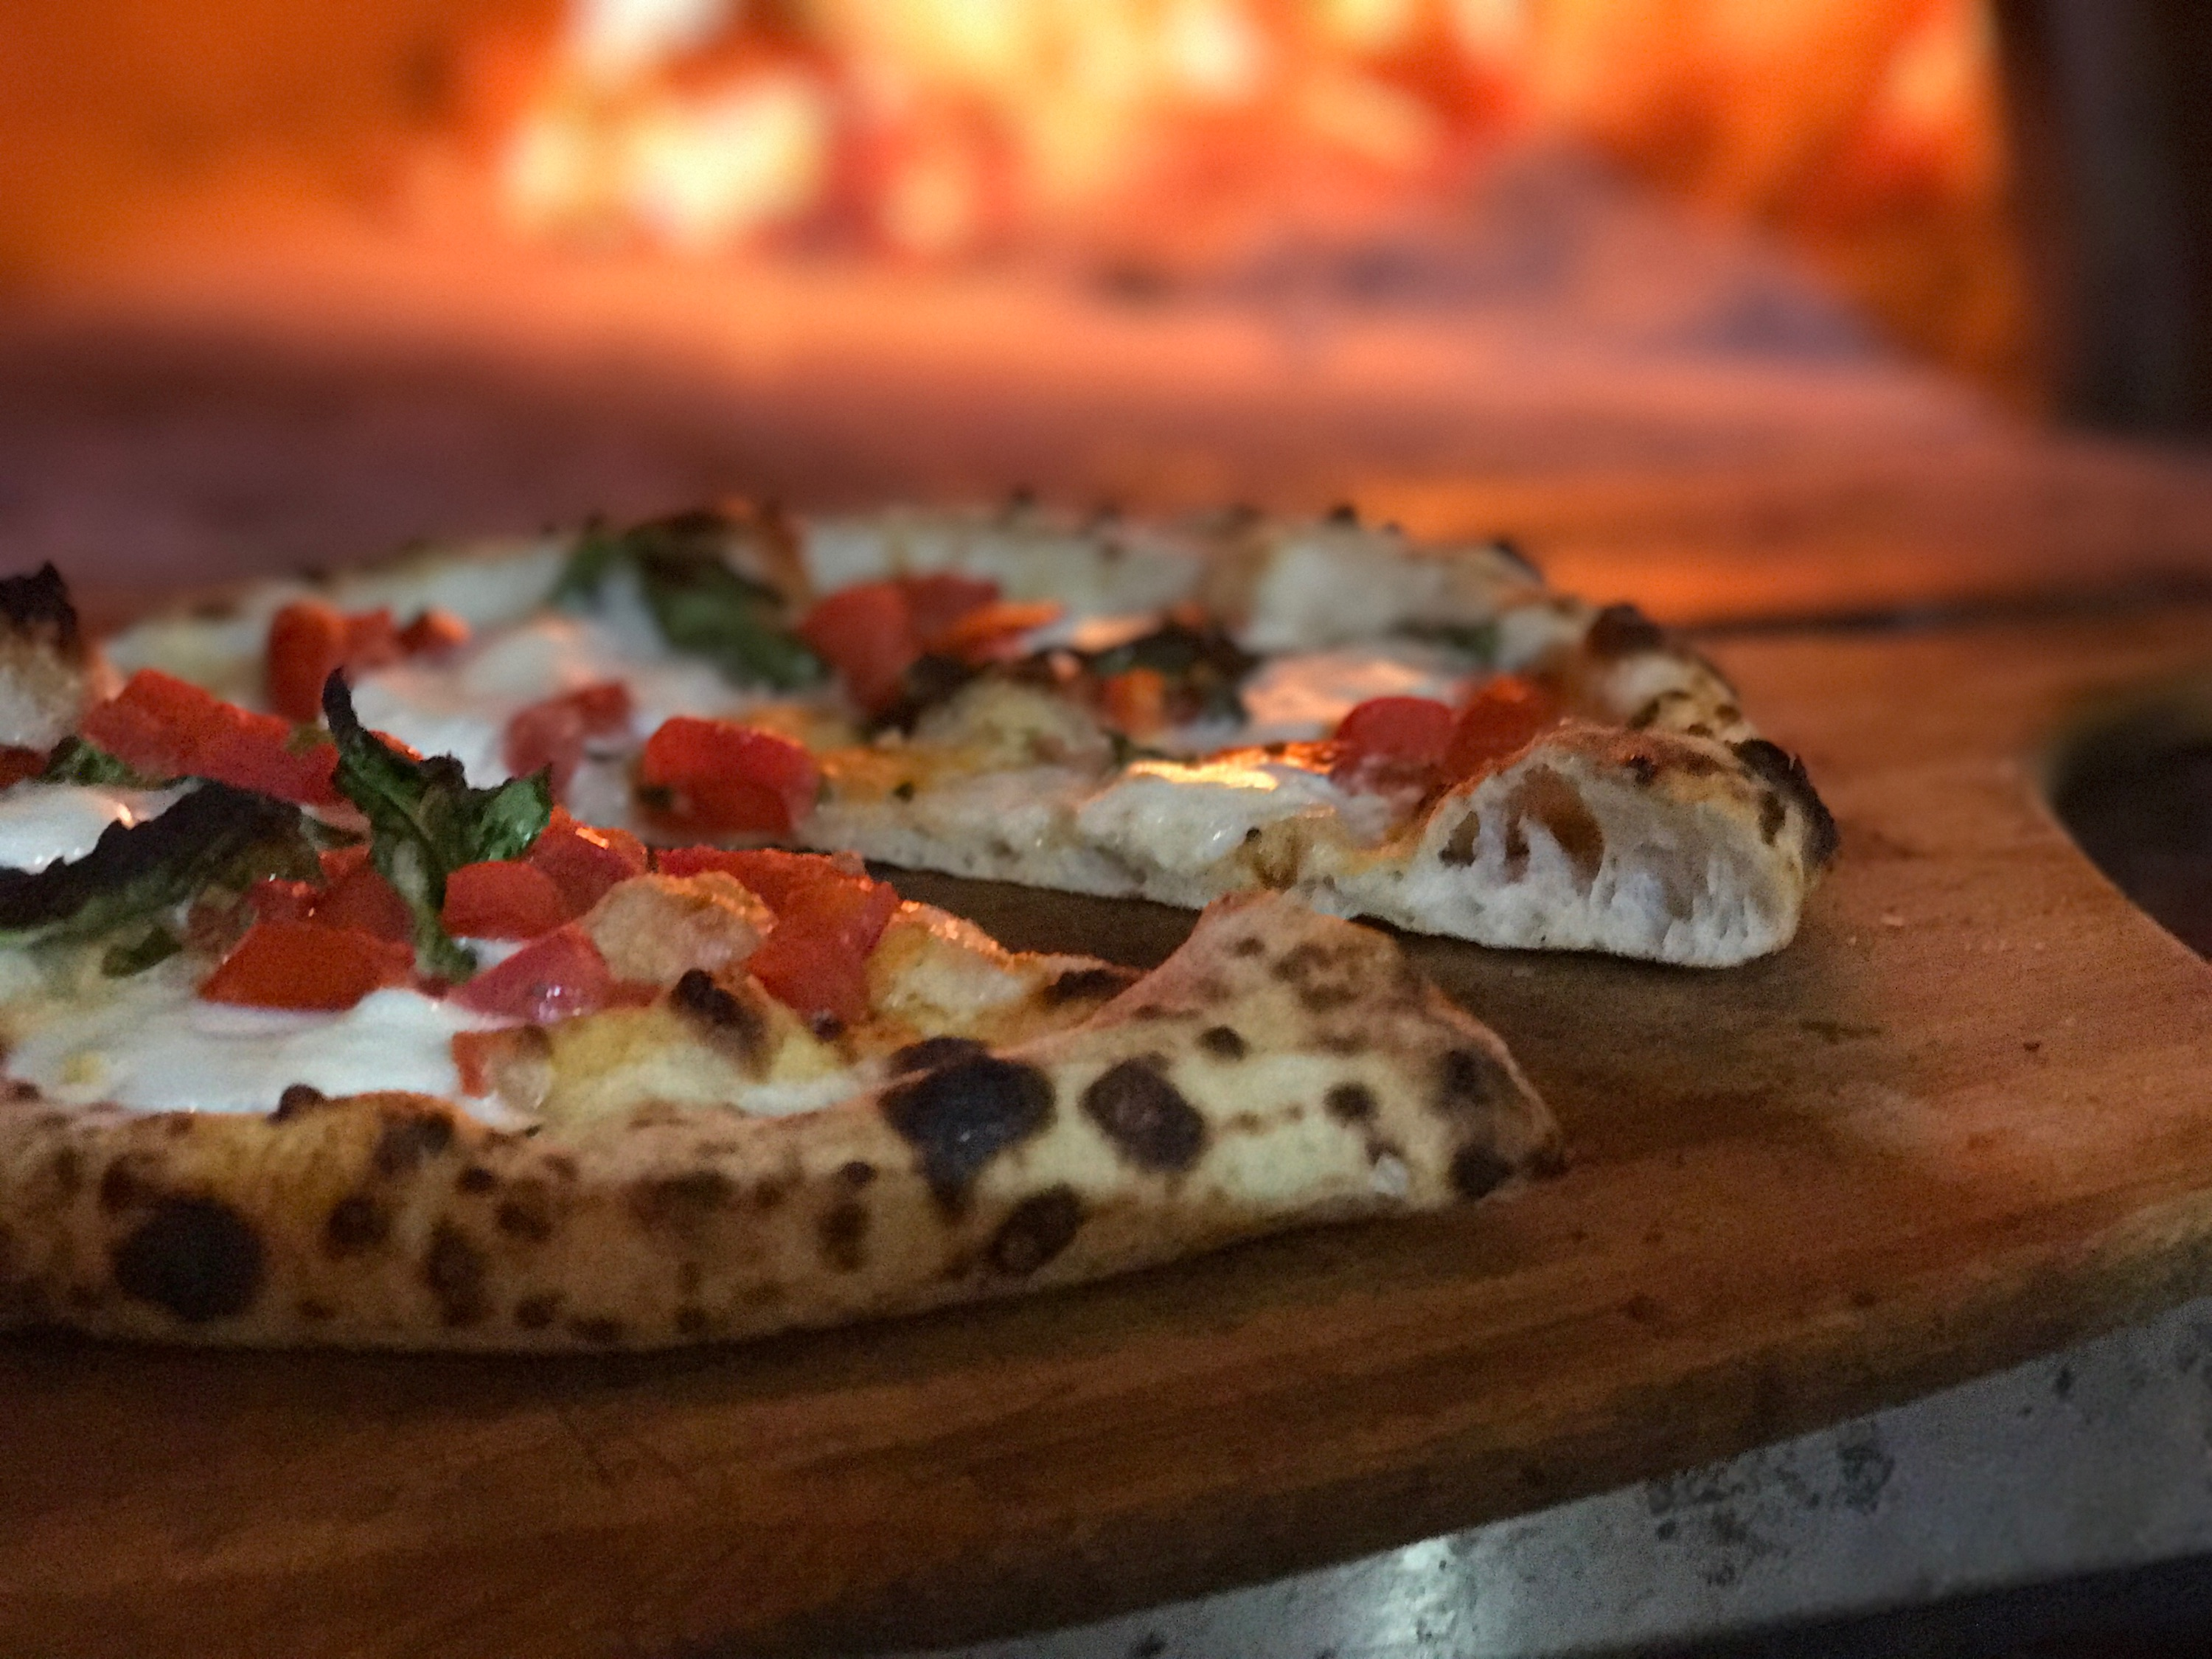 Wood Fired Pizza crust